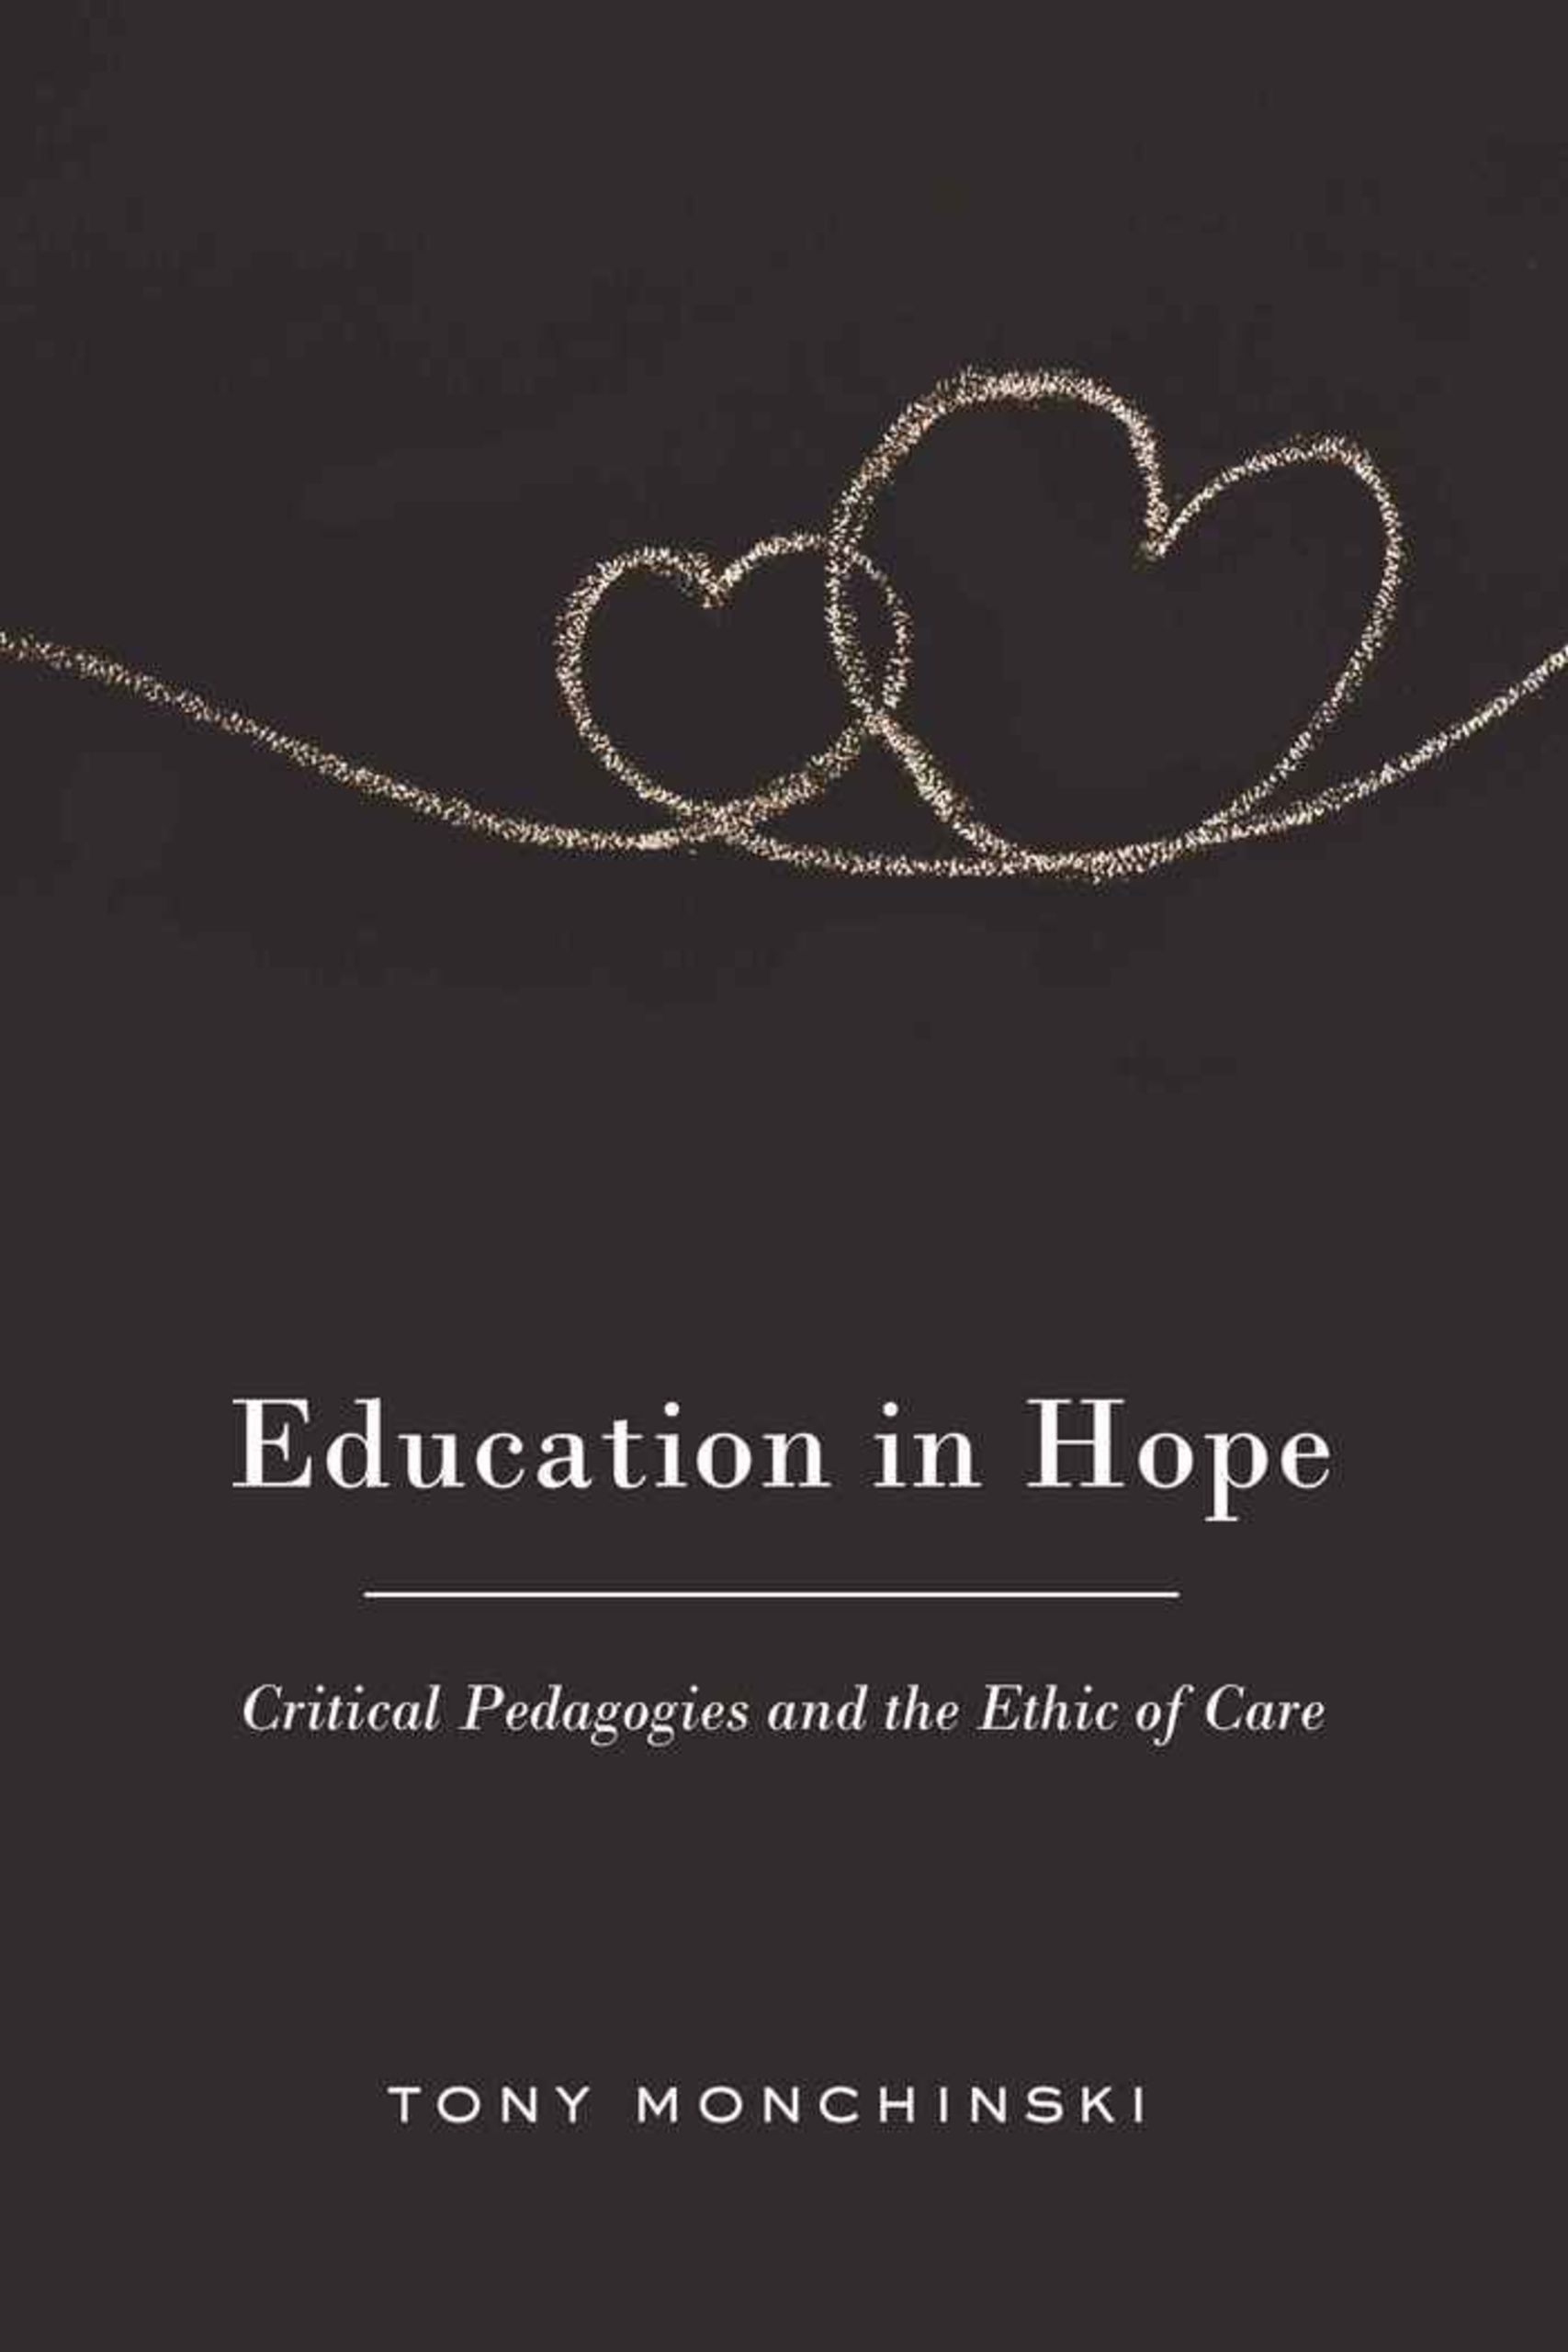 Title: Education in Hope